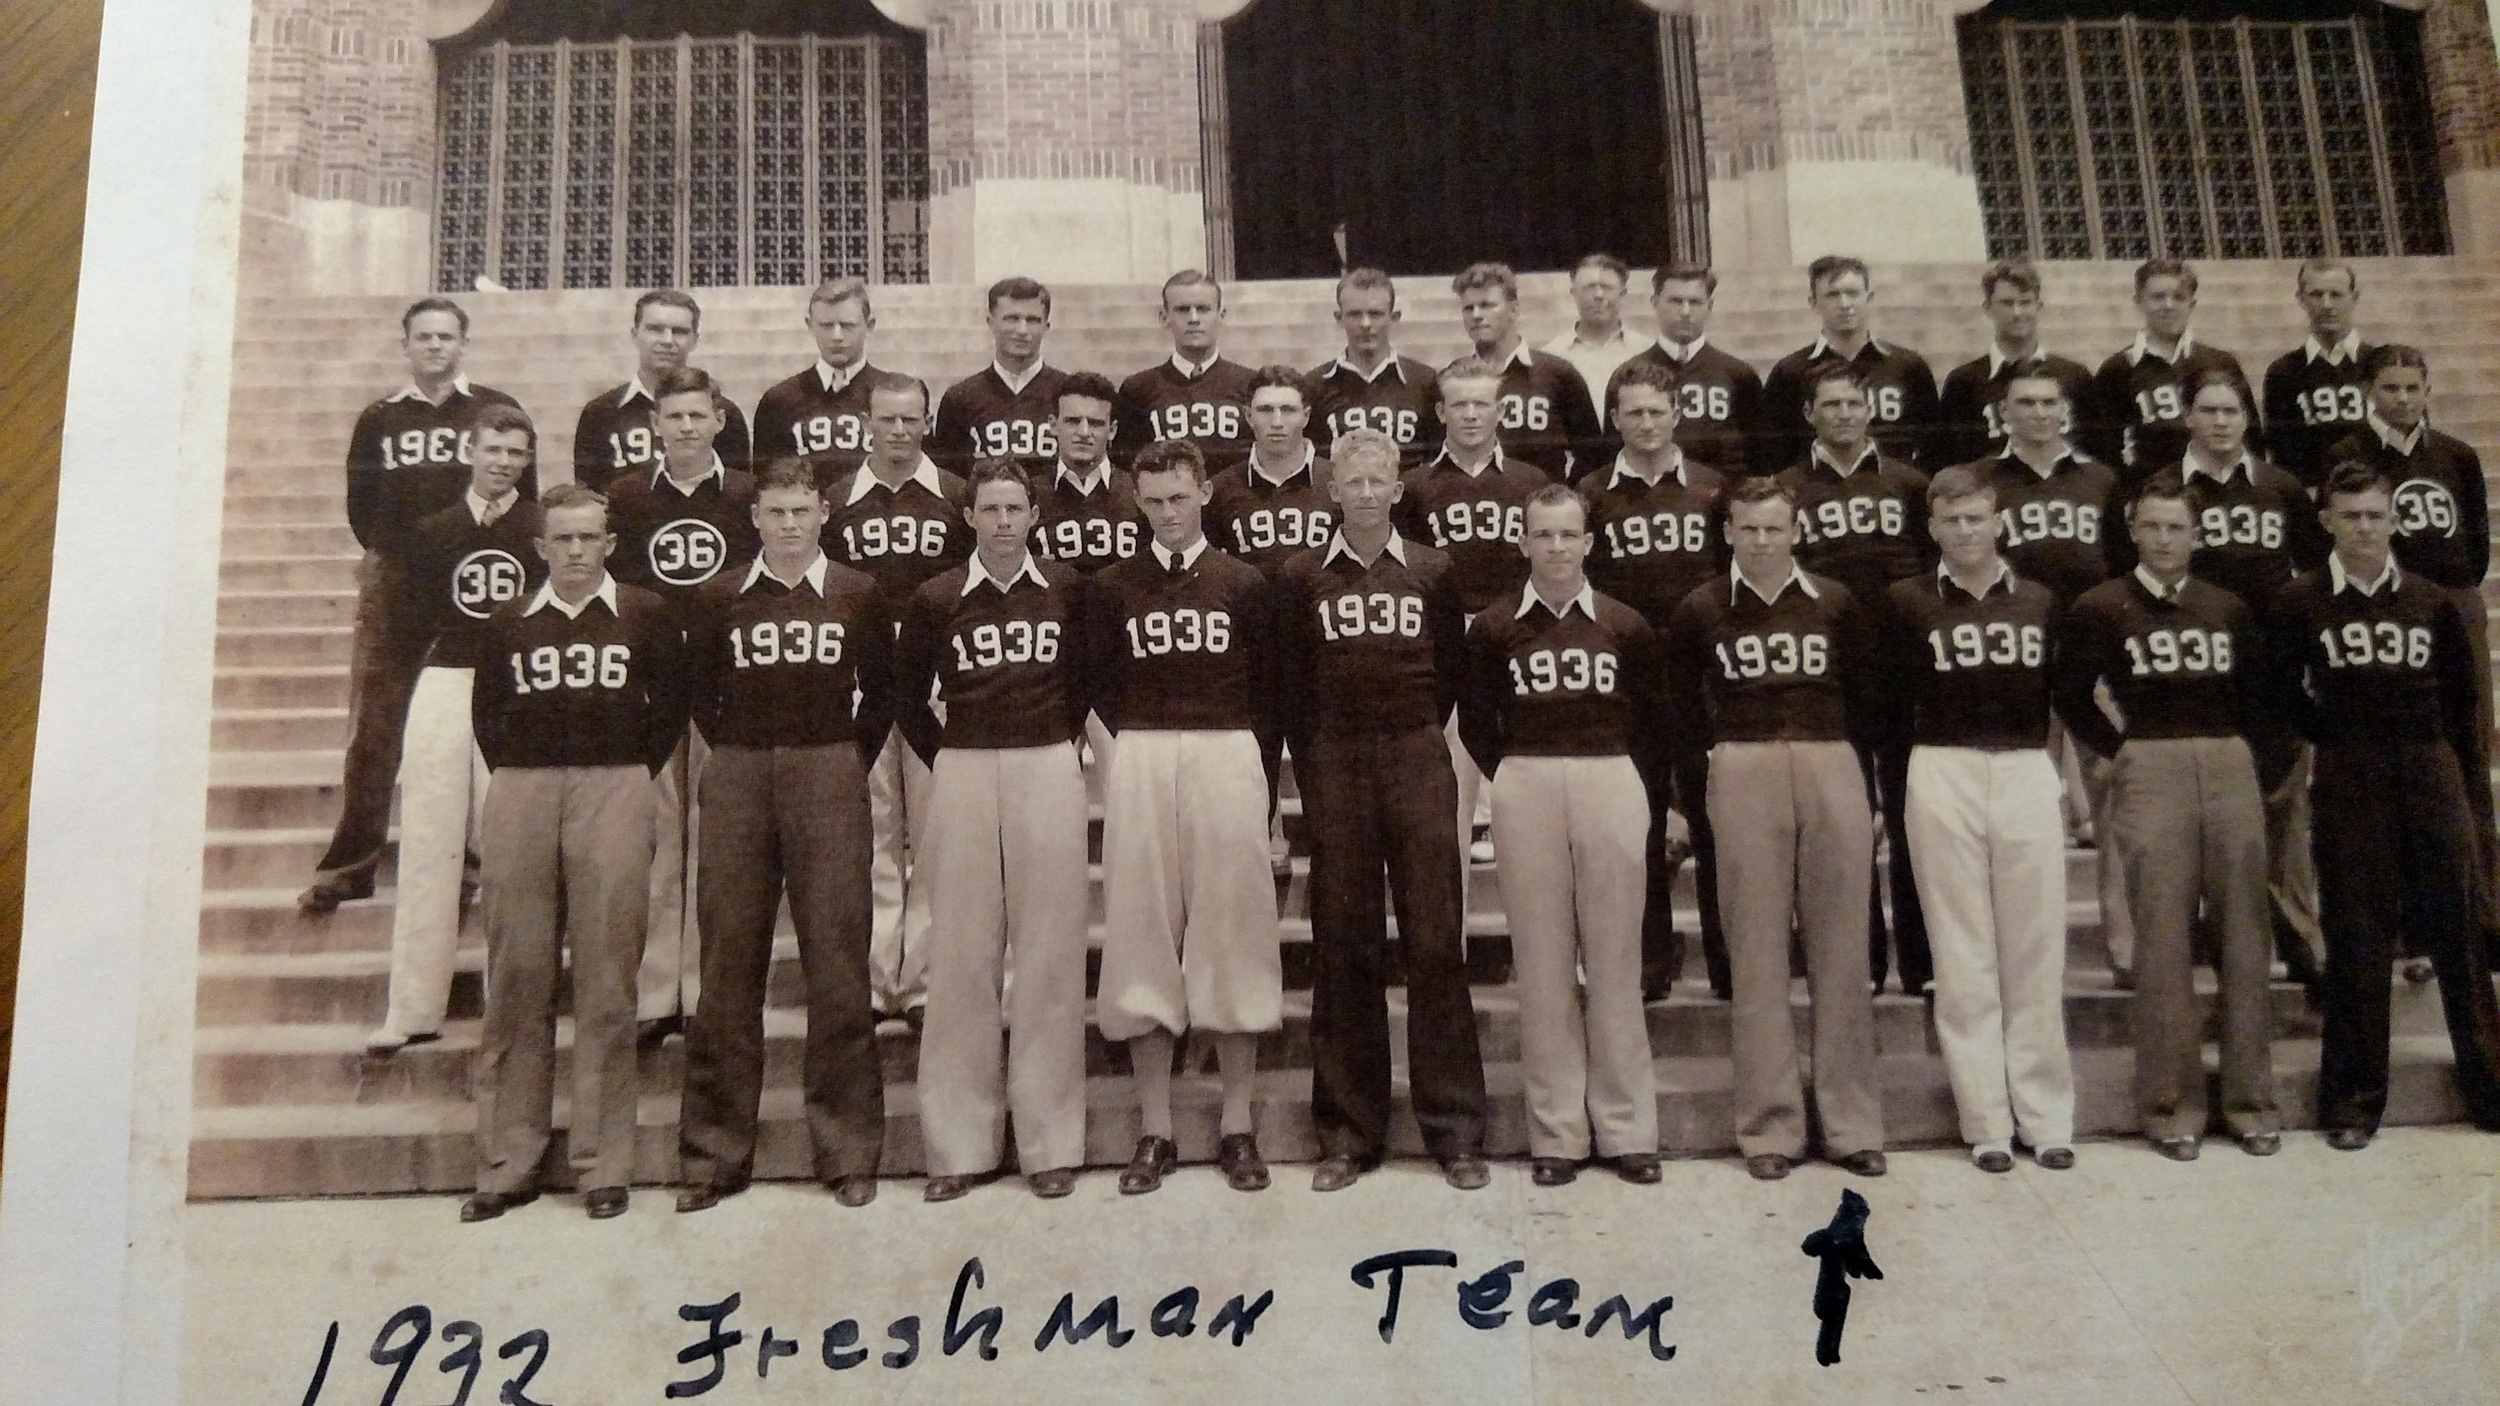 John Henderson is 4th from right on bottom row. As of September 2016 he is 103 years old in good health and very active. He is the oldest living Texas athlete of all time.